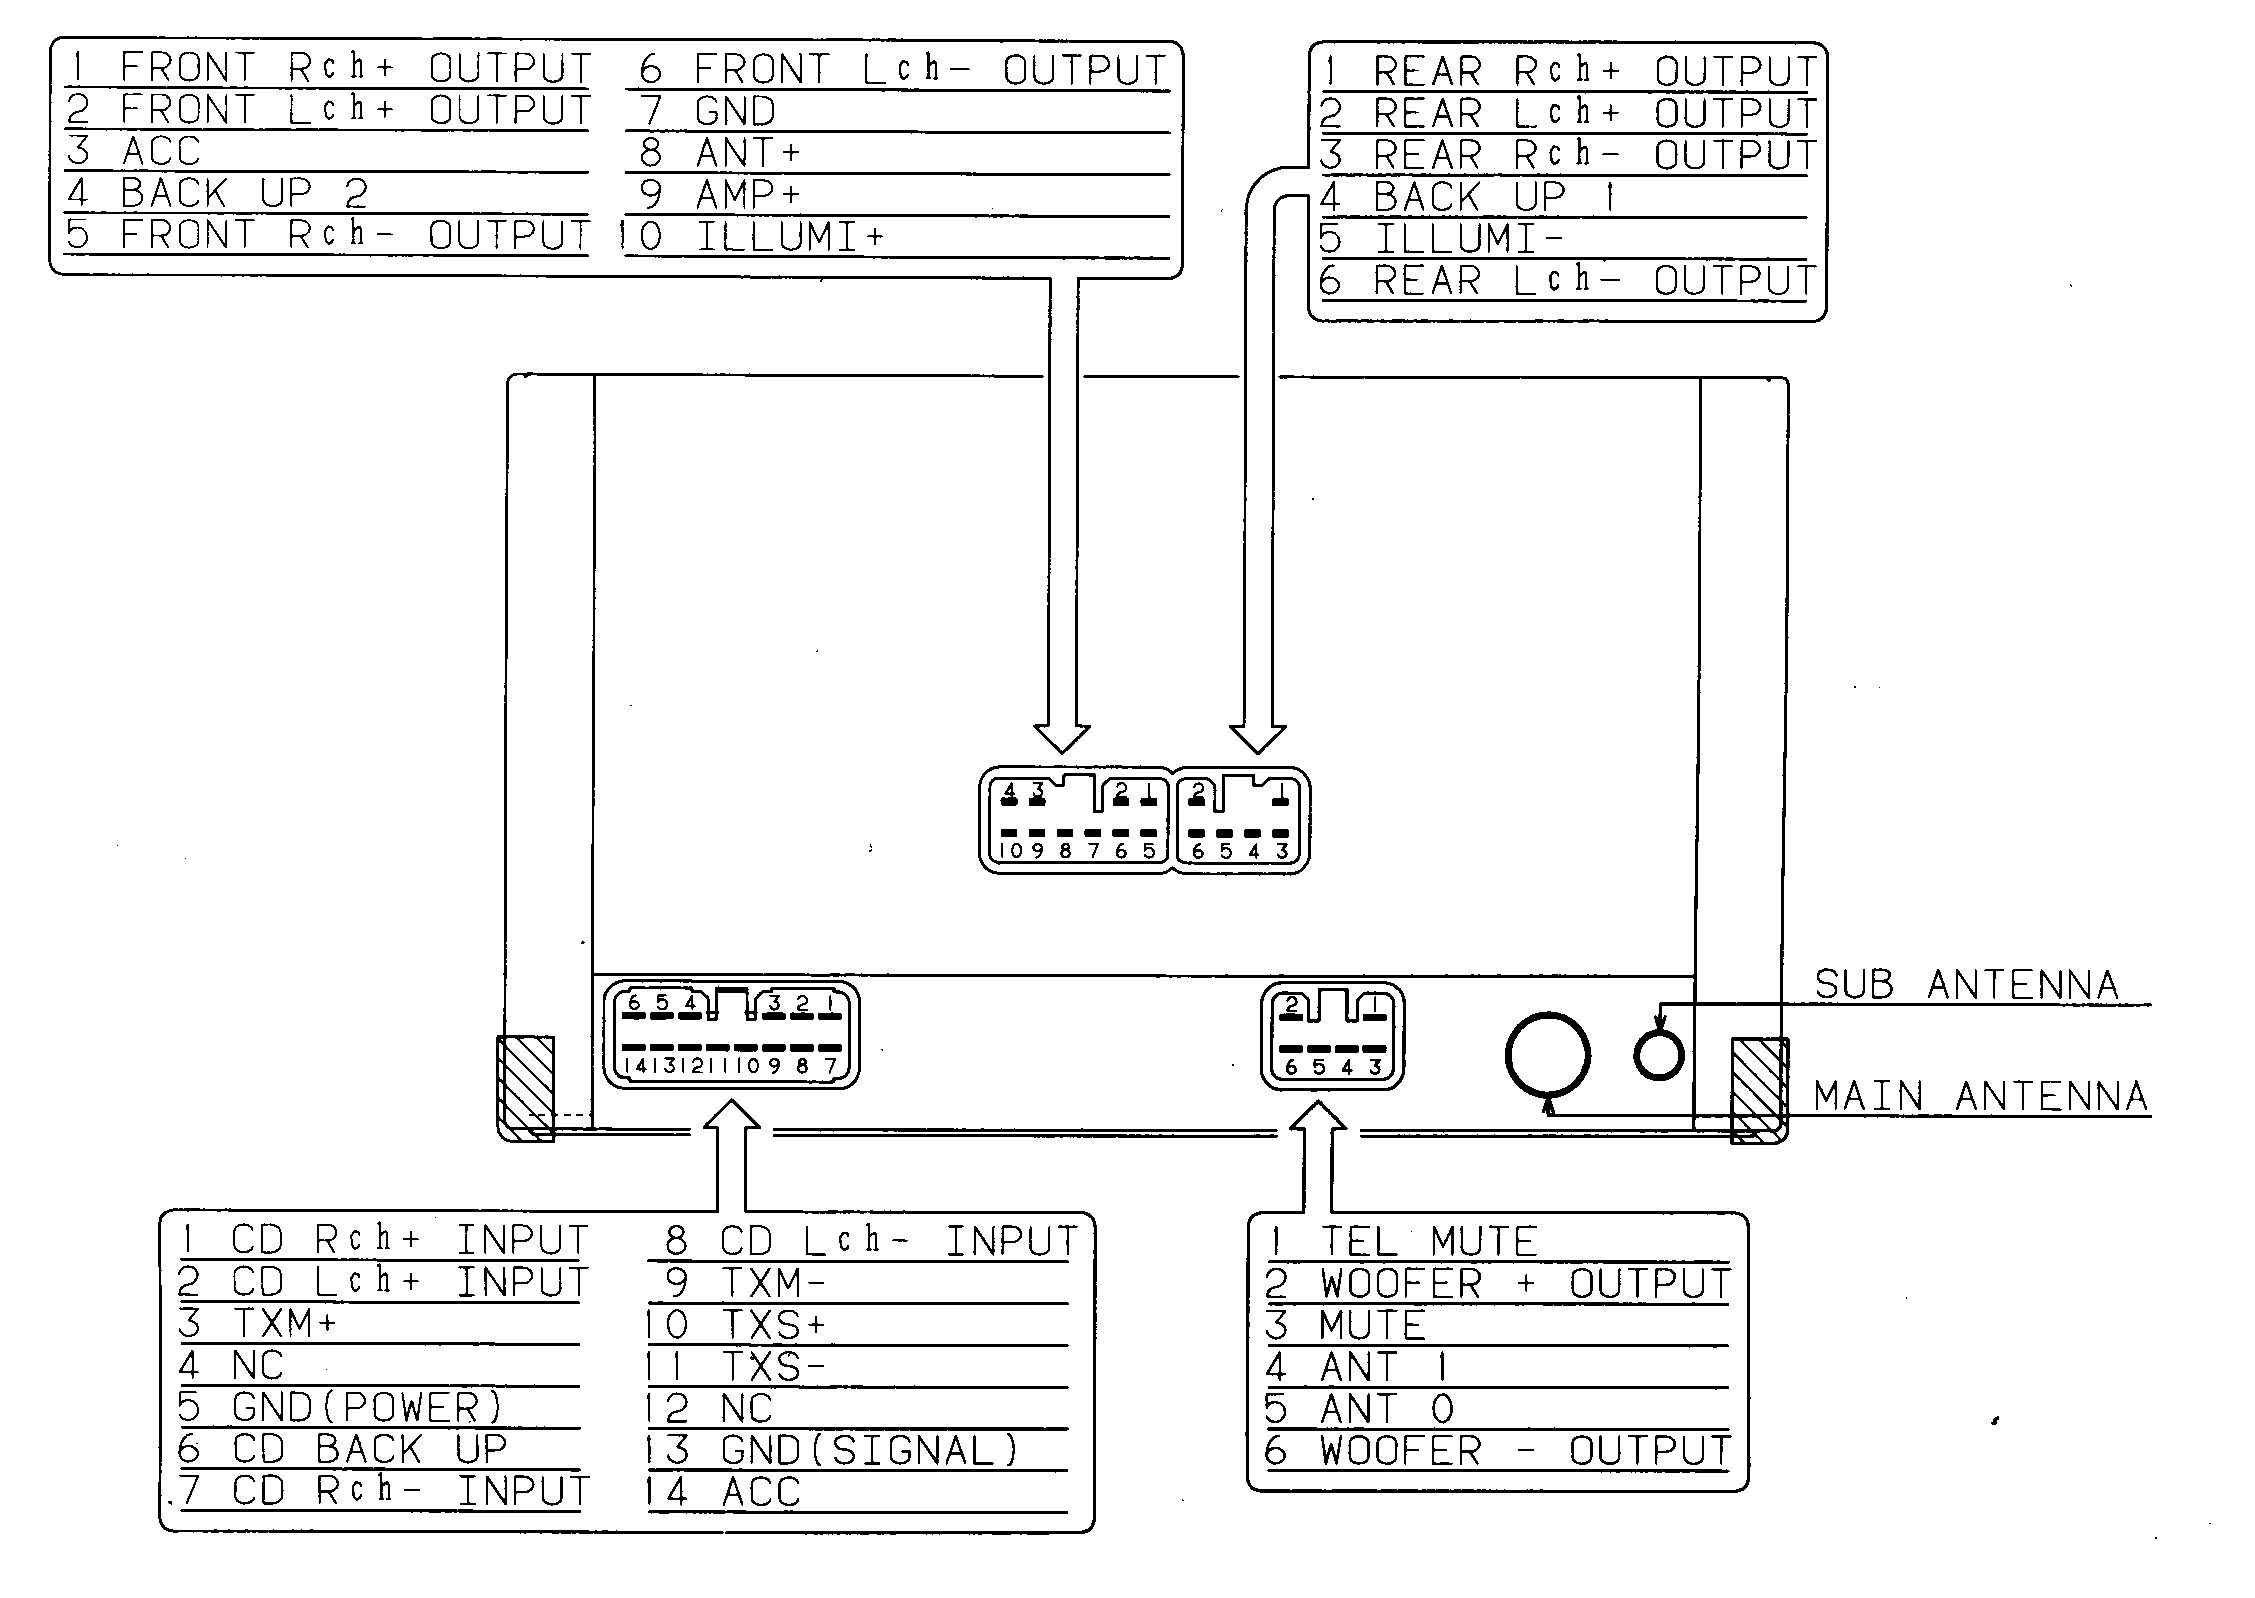 Lexus car stereo wiring diagram harness pinout connector wire hino fm1j wiring diagram efcaviation com hino radio wiring diagram at fashall.co